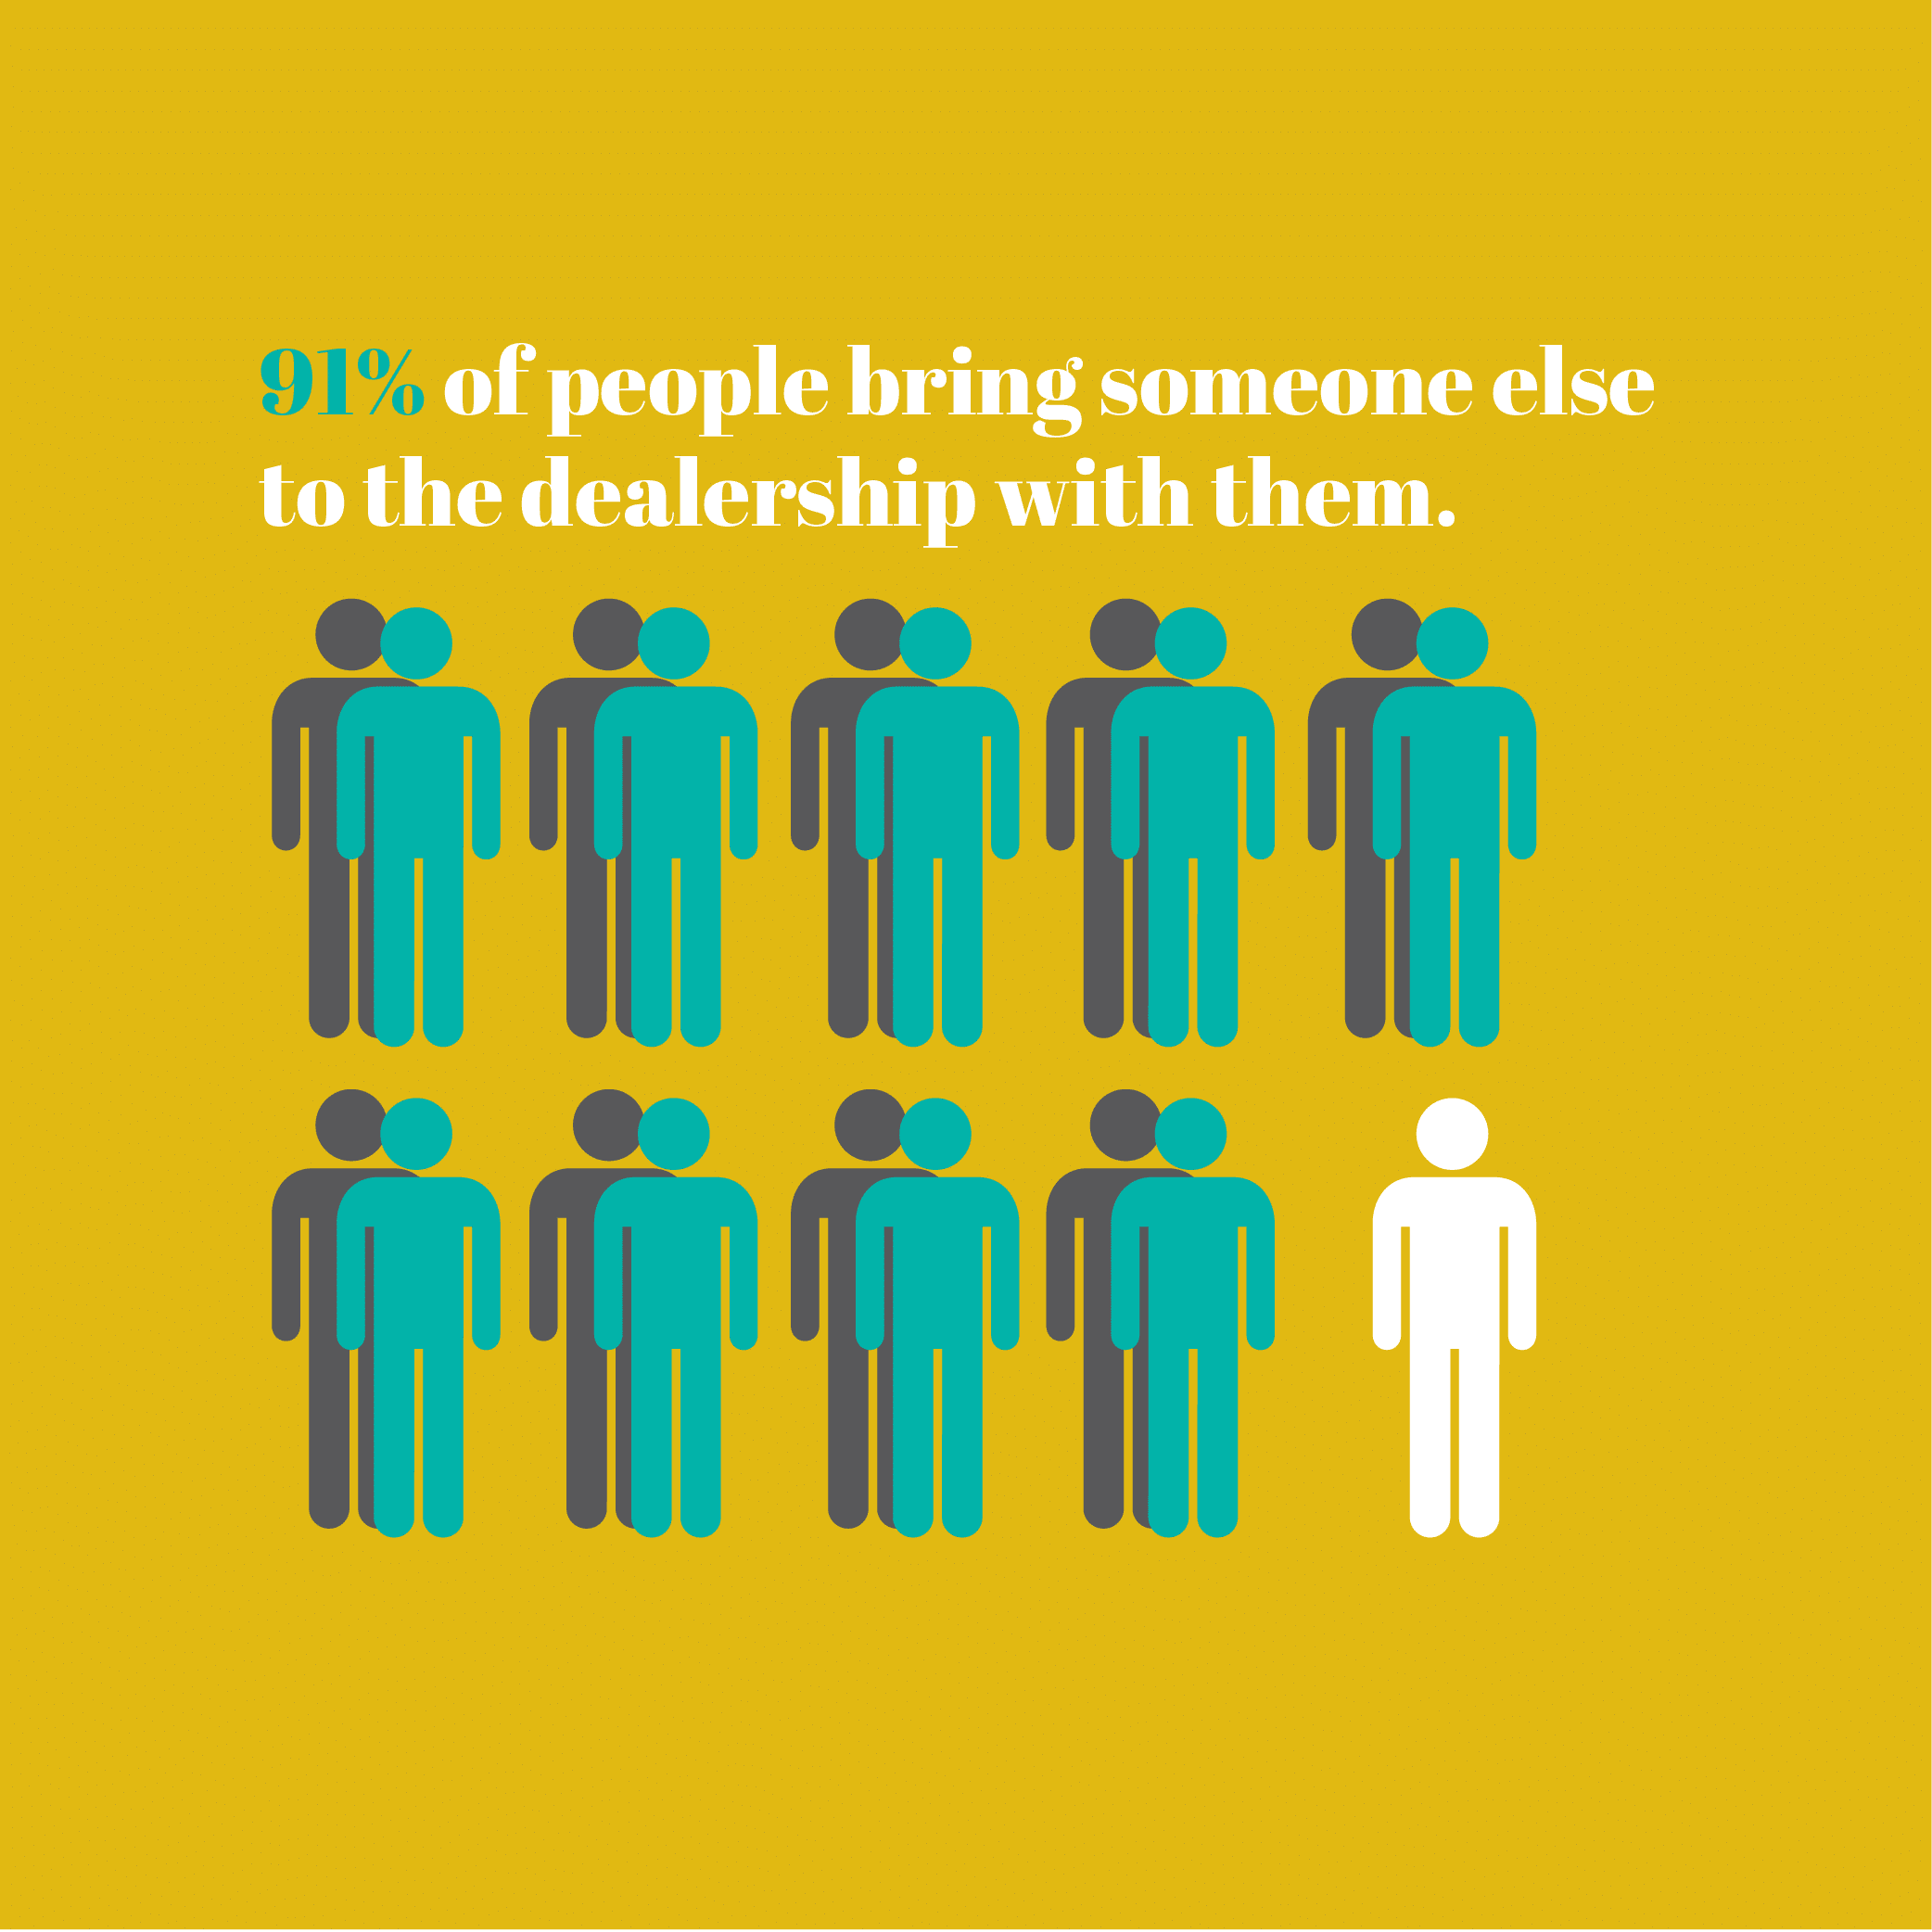 Illustration: 91% of people bring someone to the dealership with them.